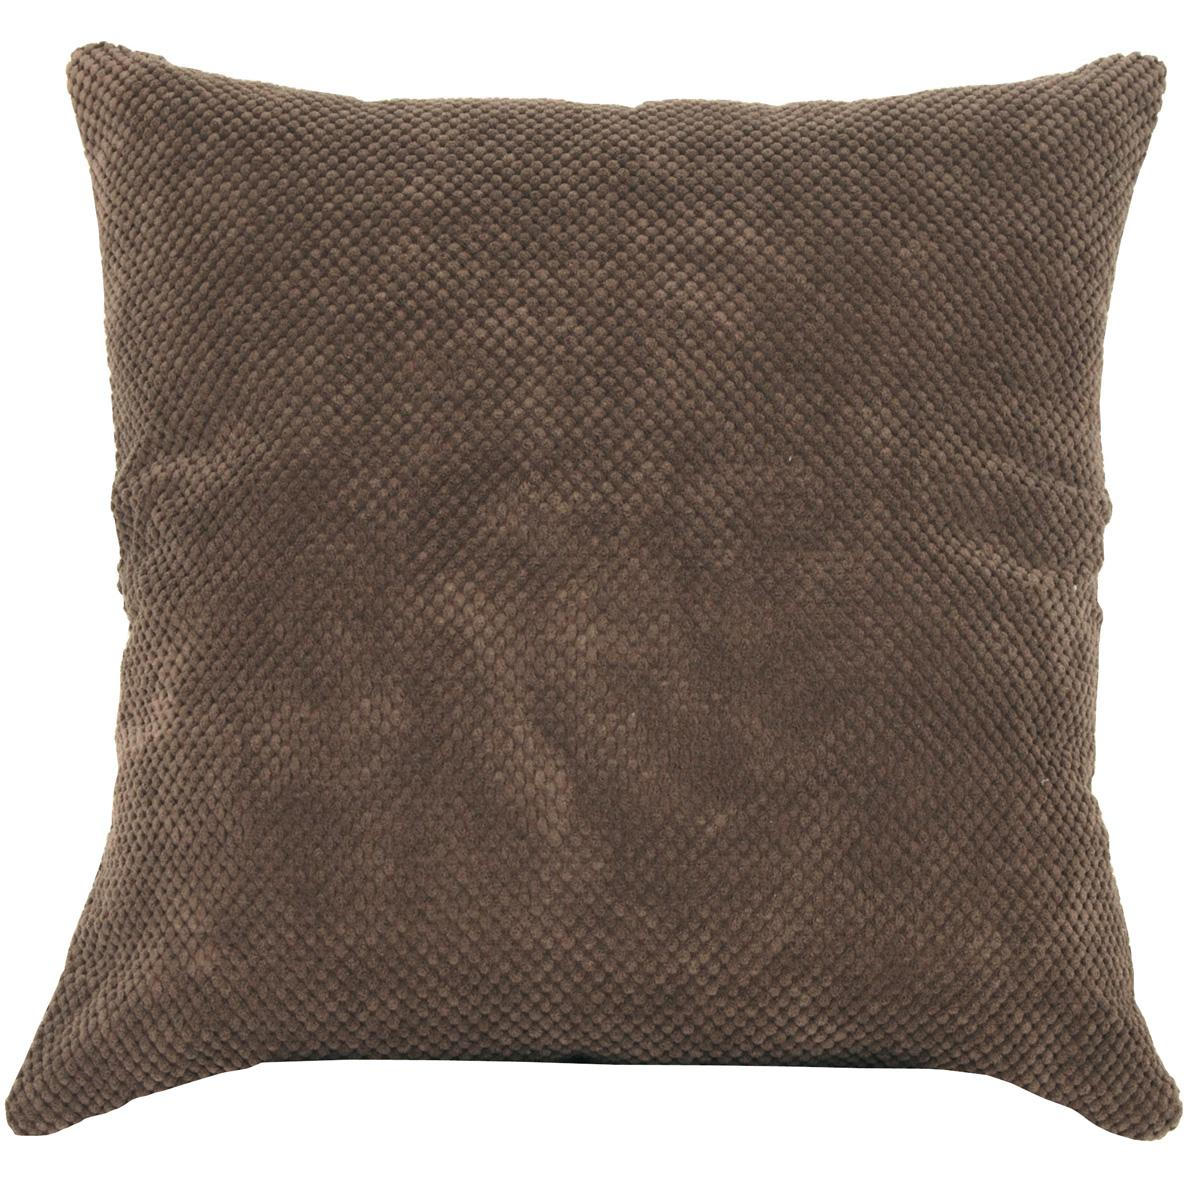 Chenille Spot Cushion Cov Chocolate